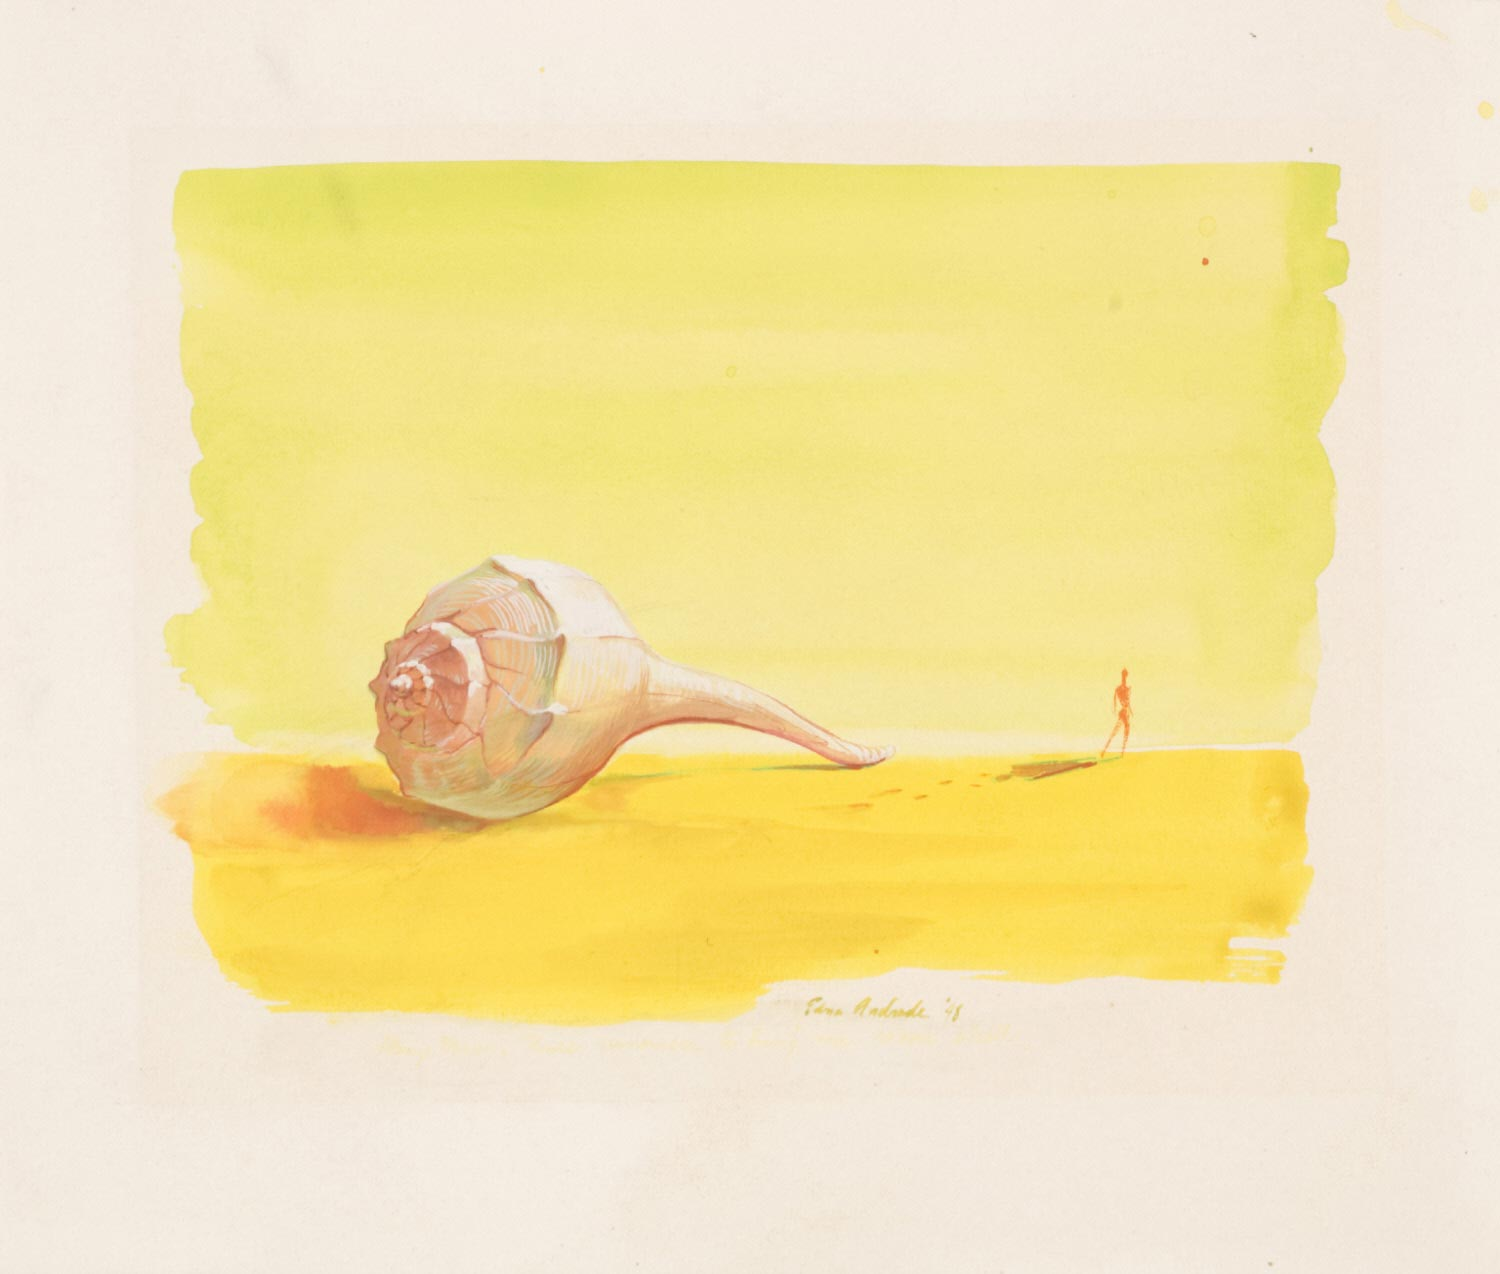 Disappearing Man and Conch Shell